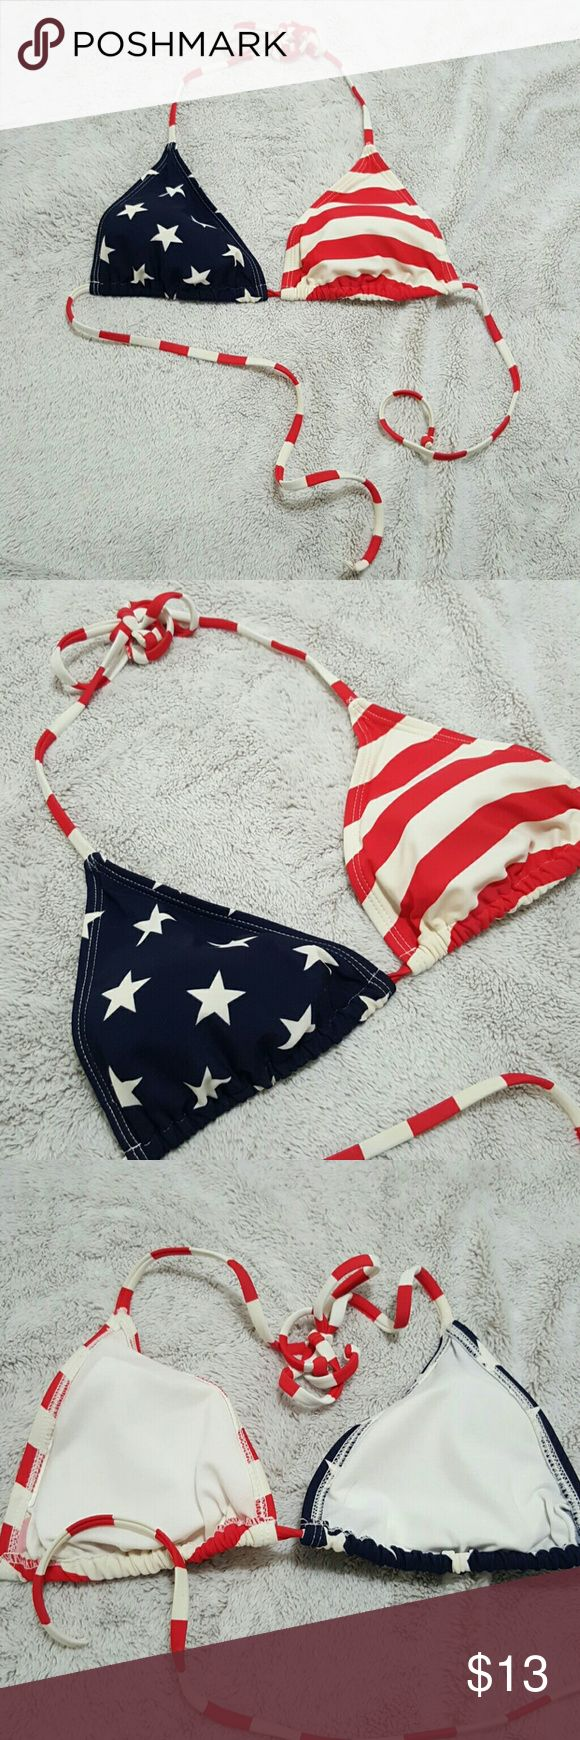 American Flag bikini top American Flag bikini top Good  used condition reasy to be reloved.  Off white vintage coloring  Size Medium. No tags. Swim Bikinis